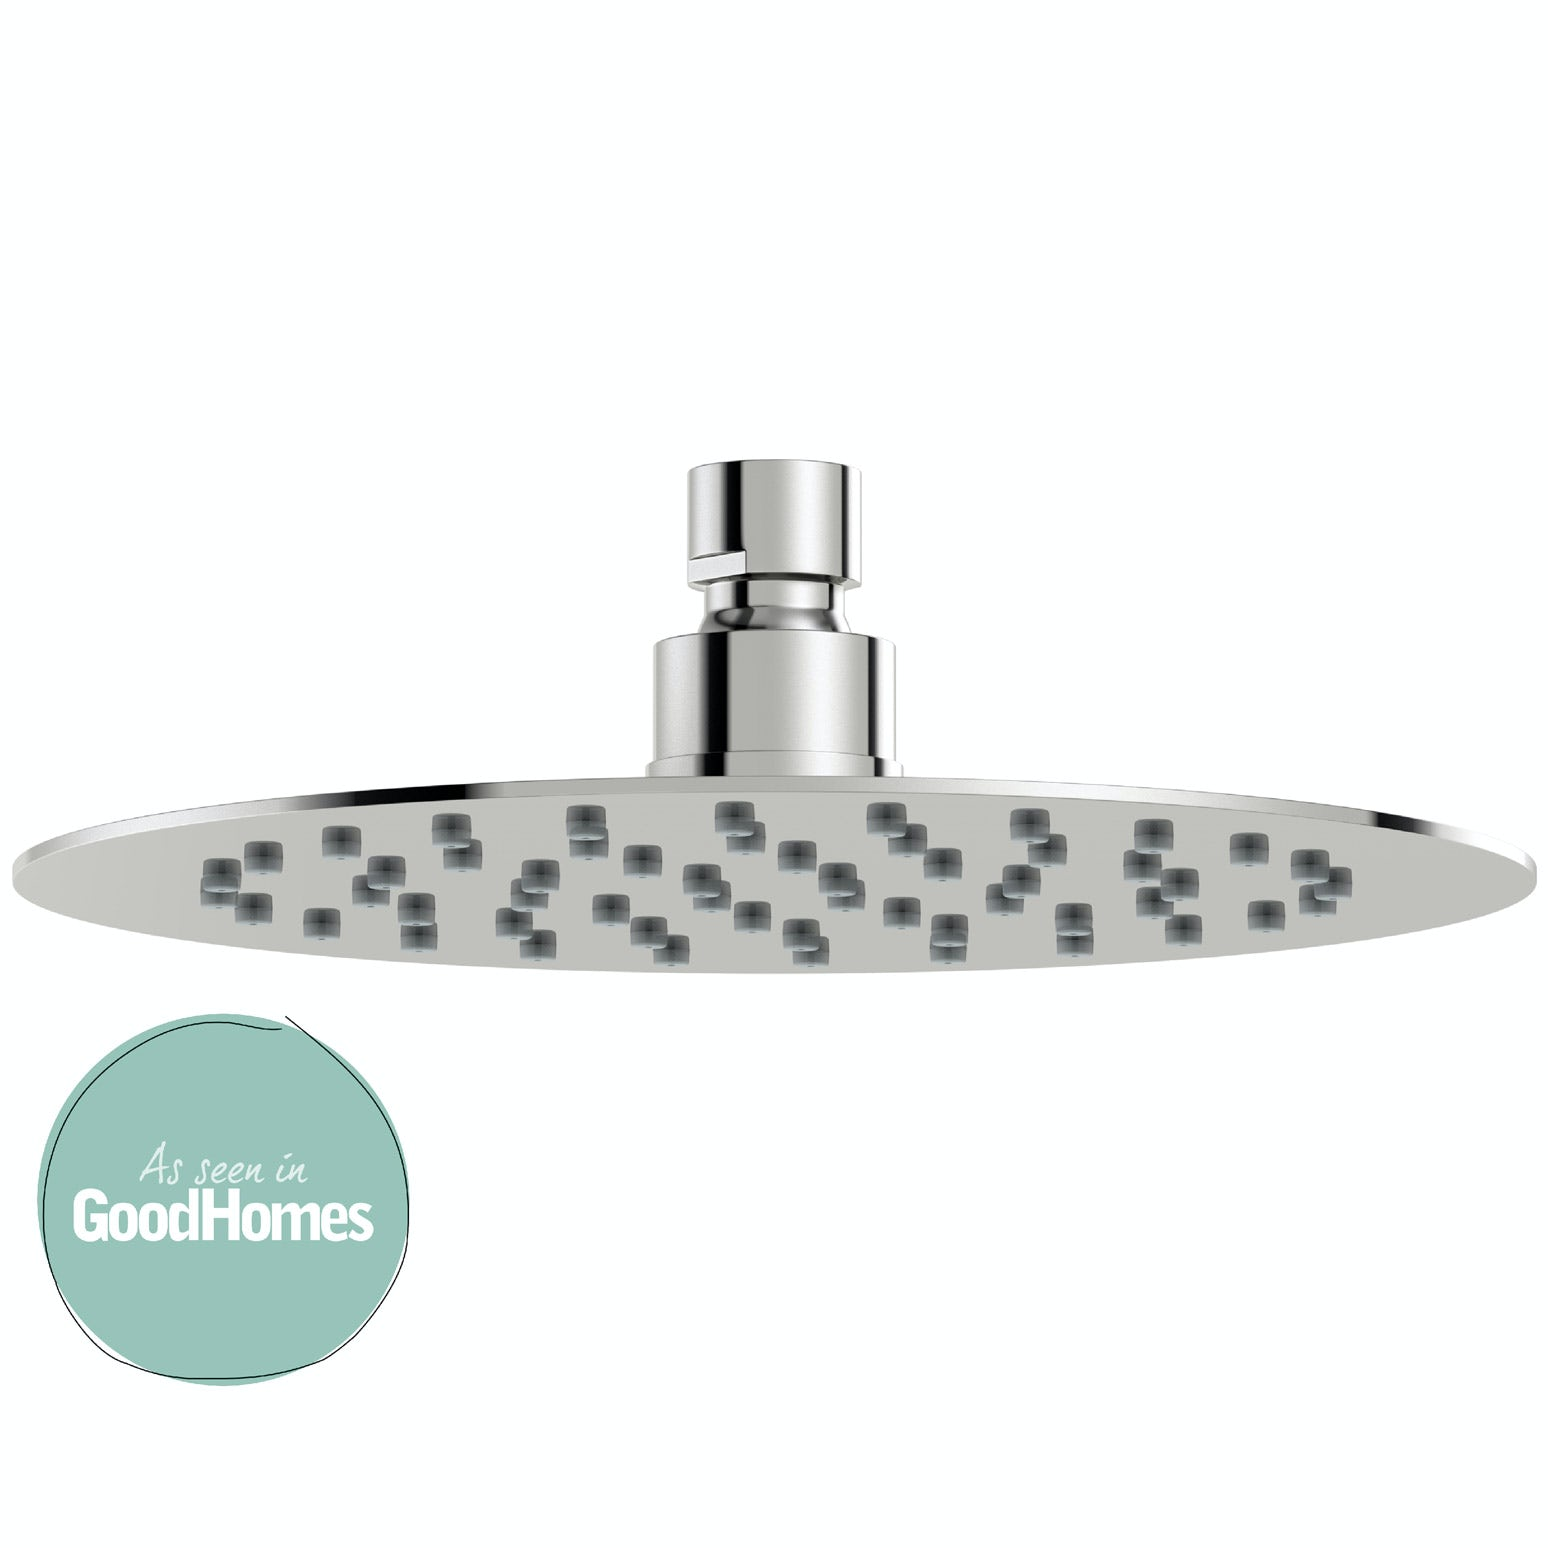 Mode Renzo round slim stainless steel shower head 200mm